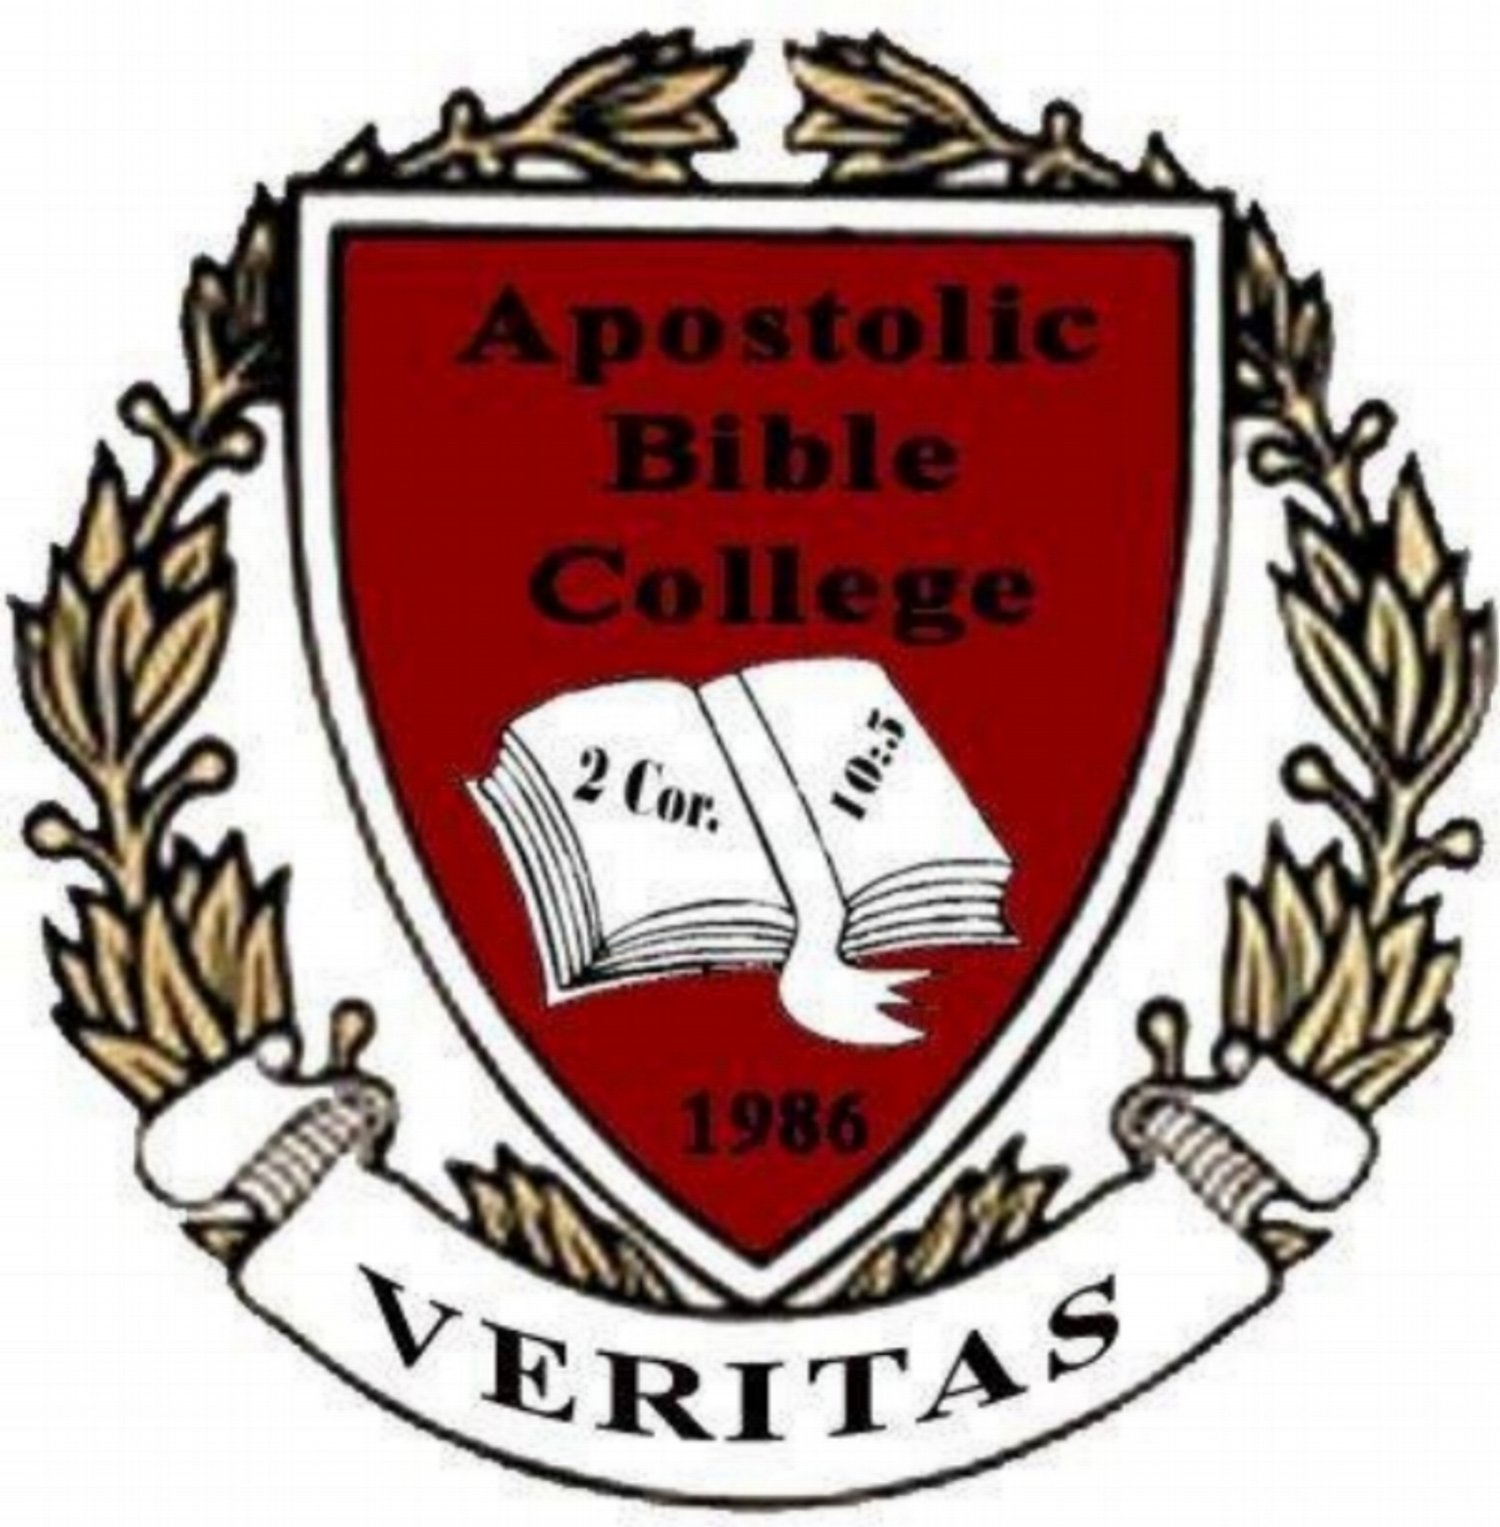 Apostolic Bible College